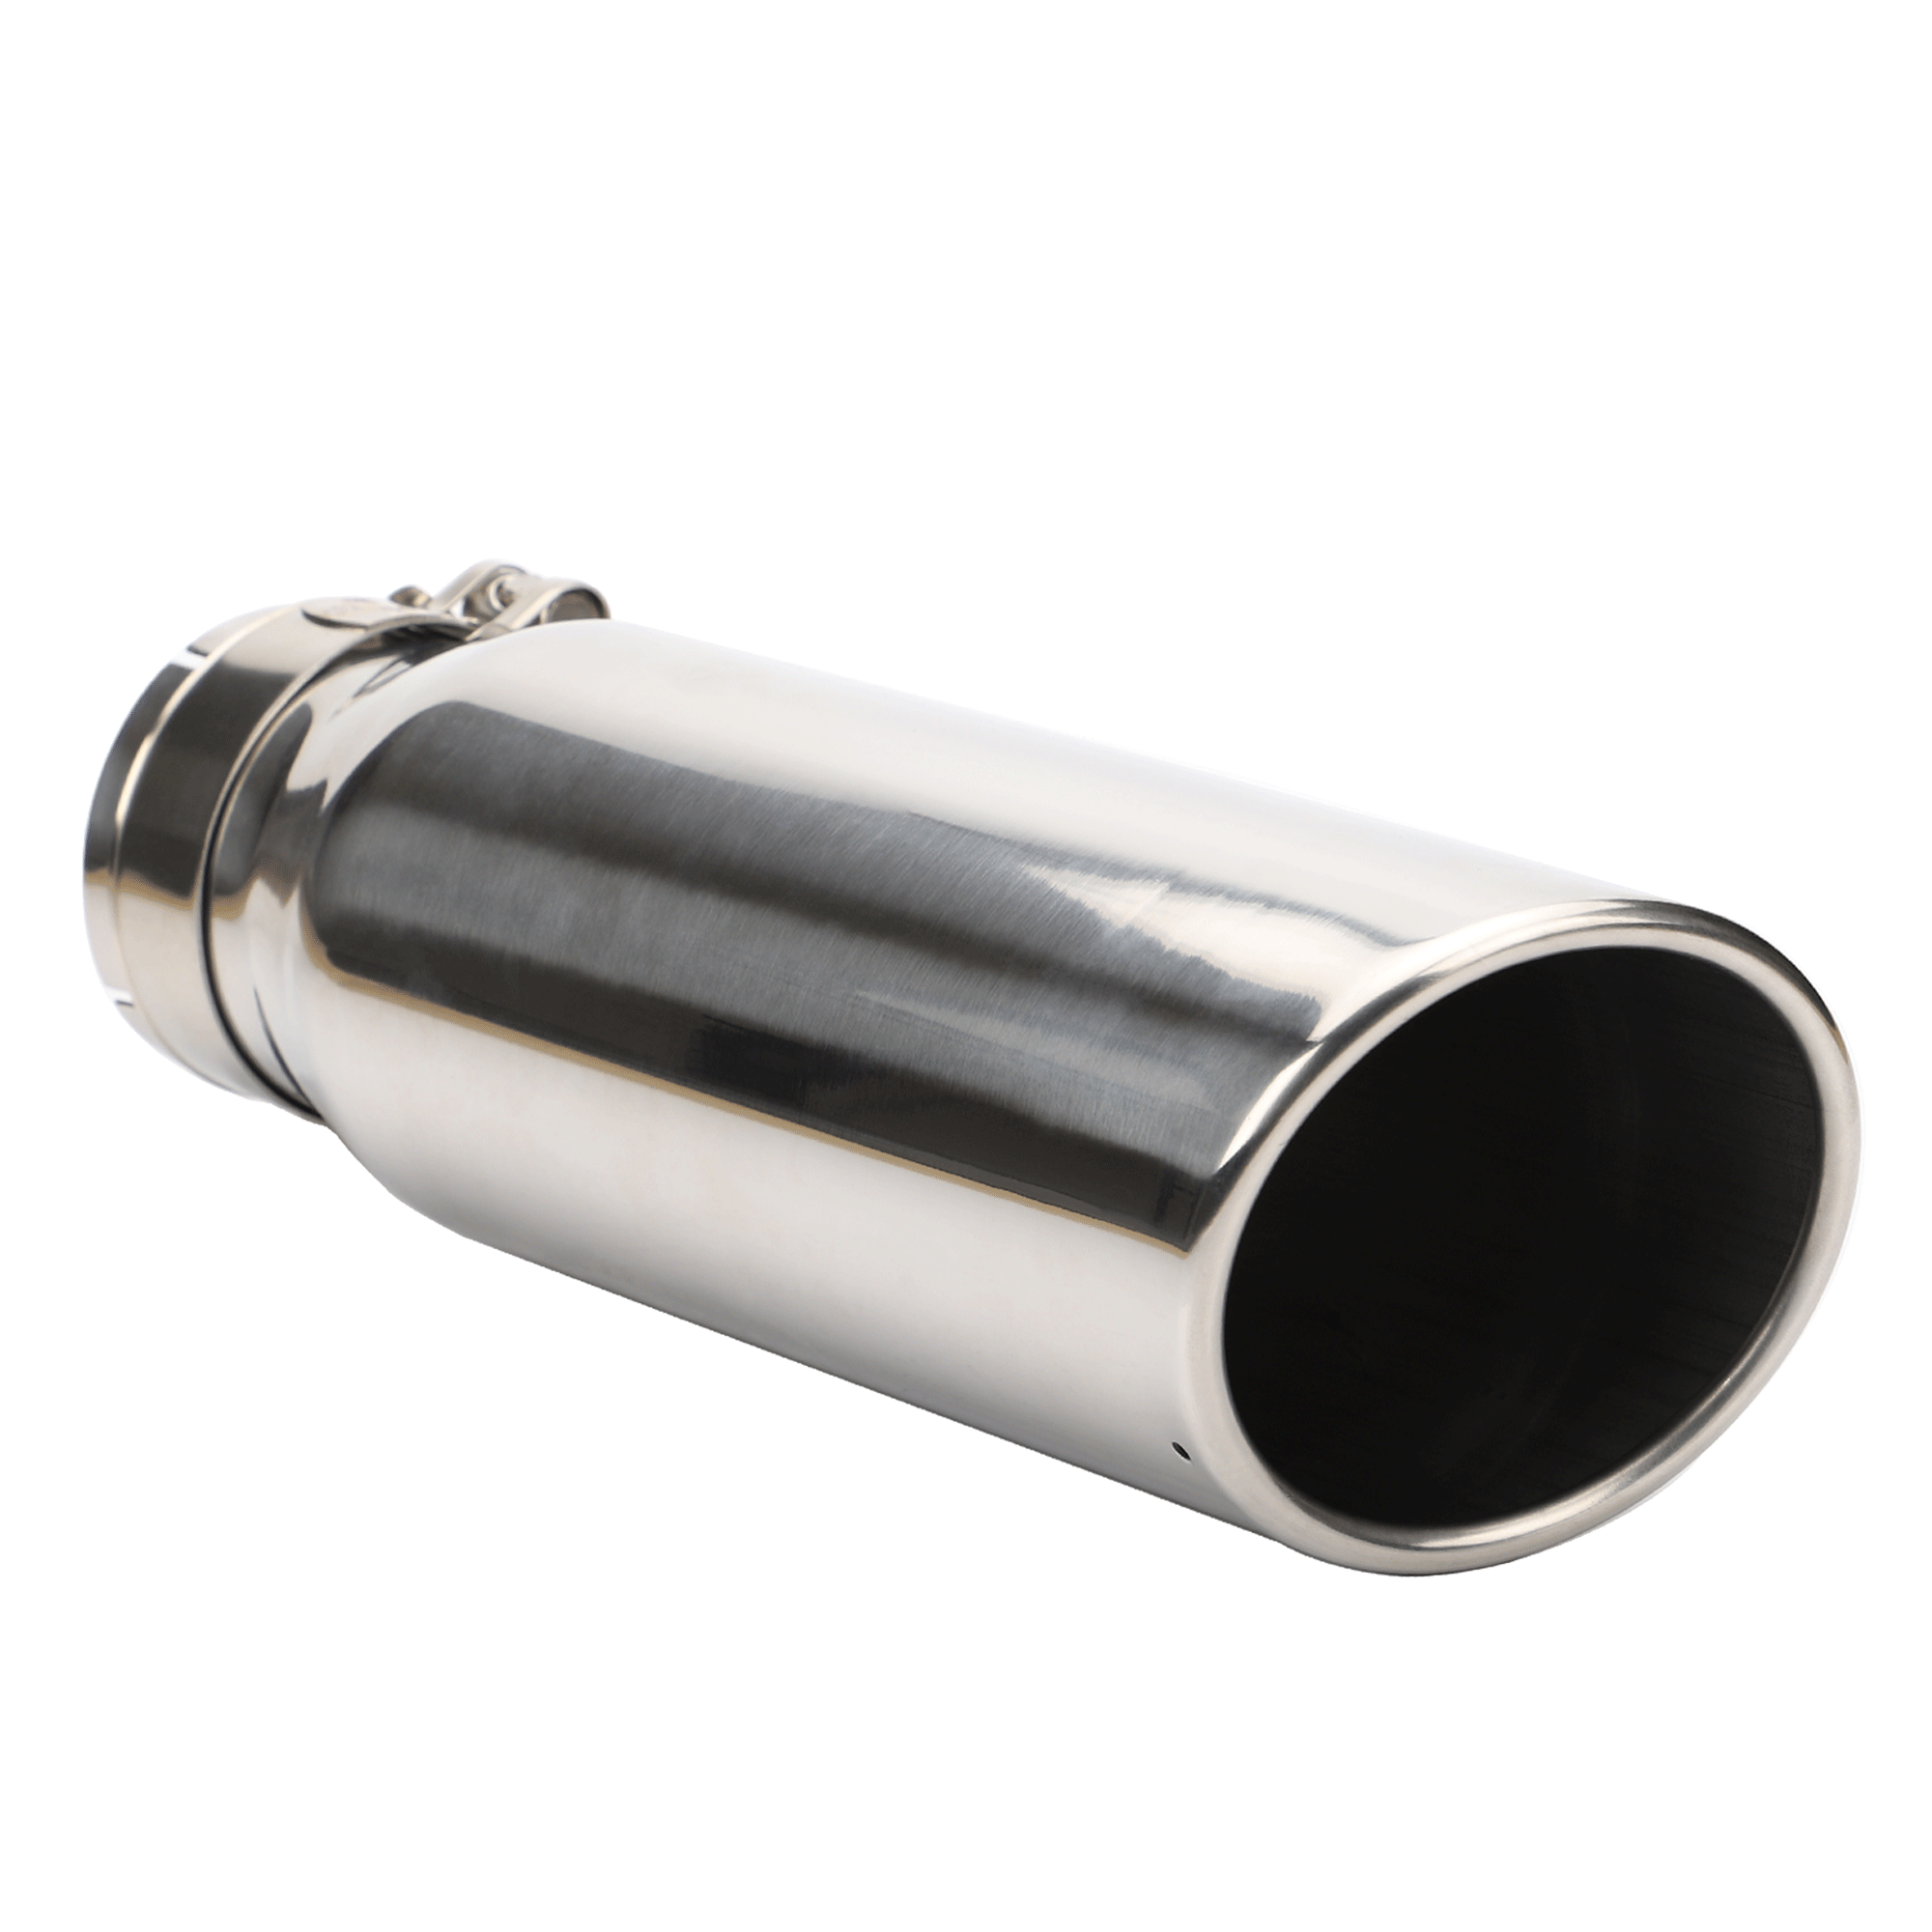 exhaust tip 3 inch inlet x 4 inch outlet x 12 inch long chrome polished stainless steel angle cut rolled exhaust tip buy exhaust tip 3 inch inlet x